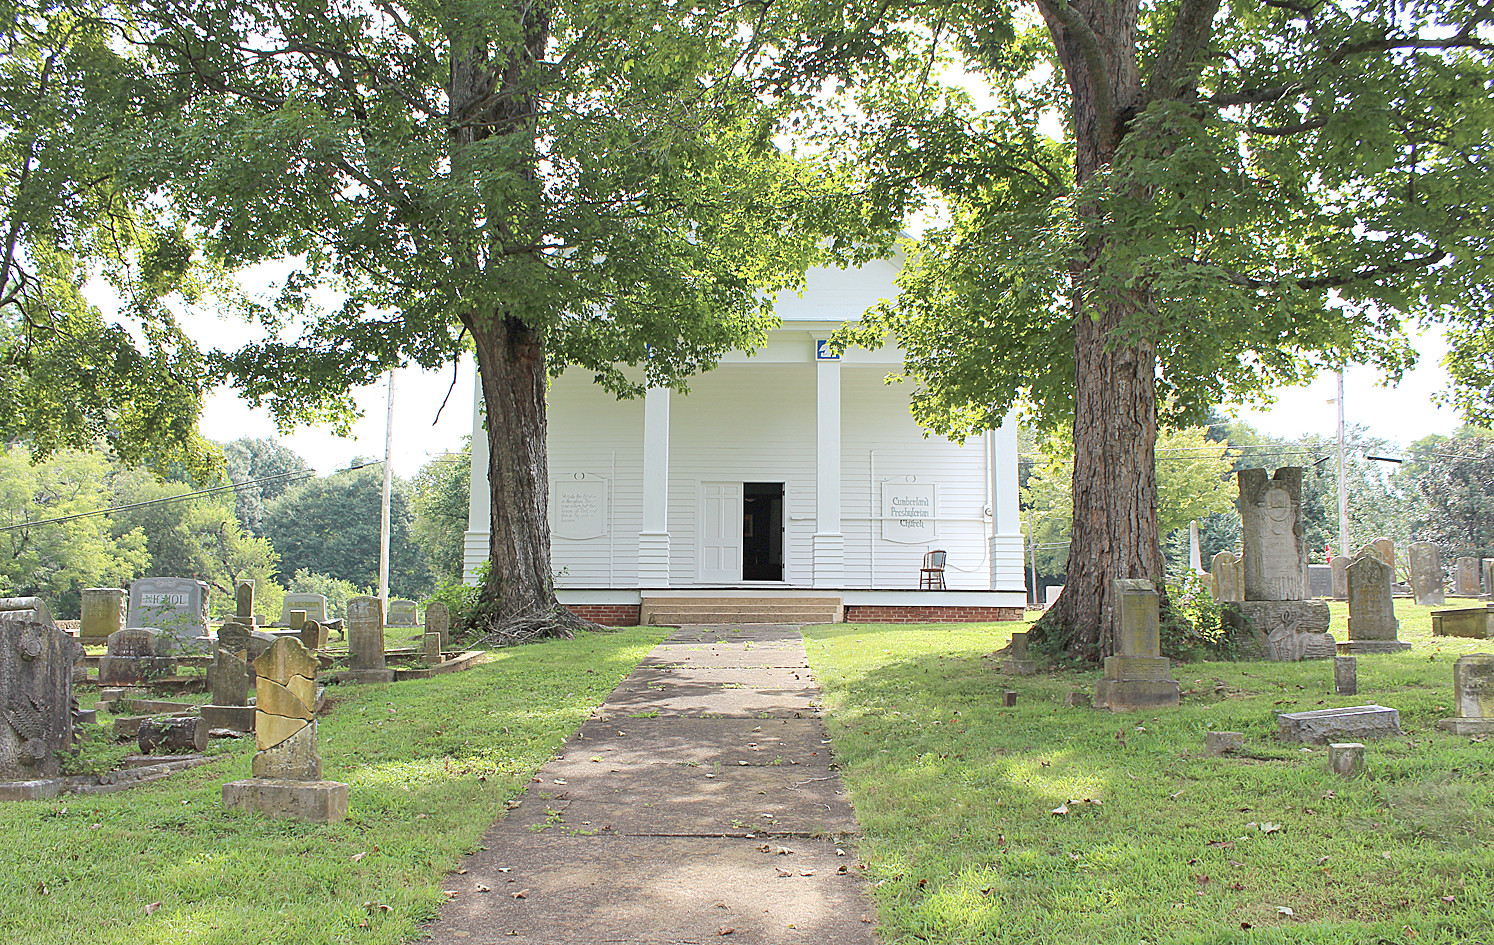 THE HISTORIC CHARLESTON Cumberland Presbyterian Church, established in 1860, was open for tours on Saturday. Attendance was slow due to the Cowpea Festival and other activities.